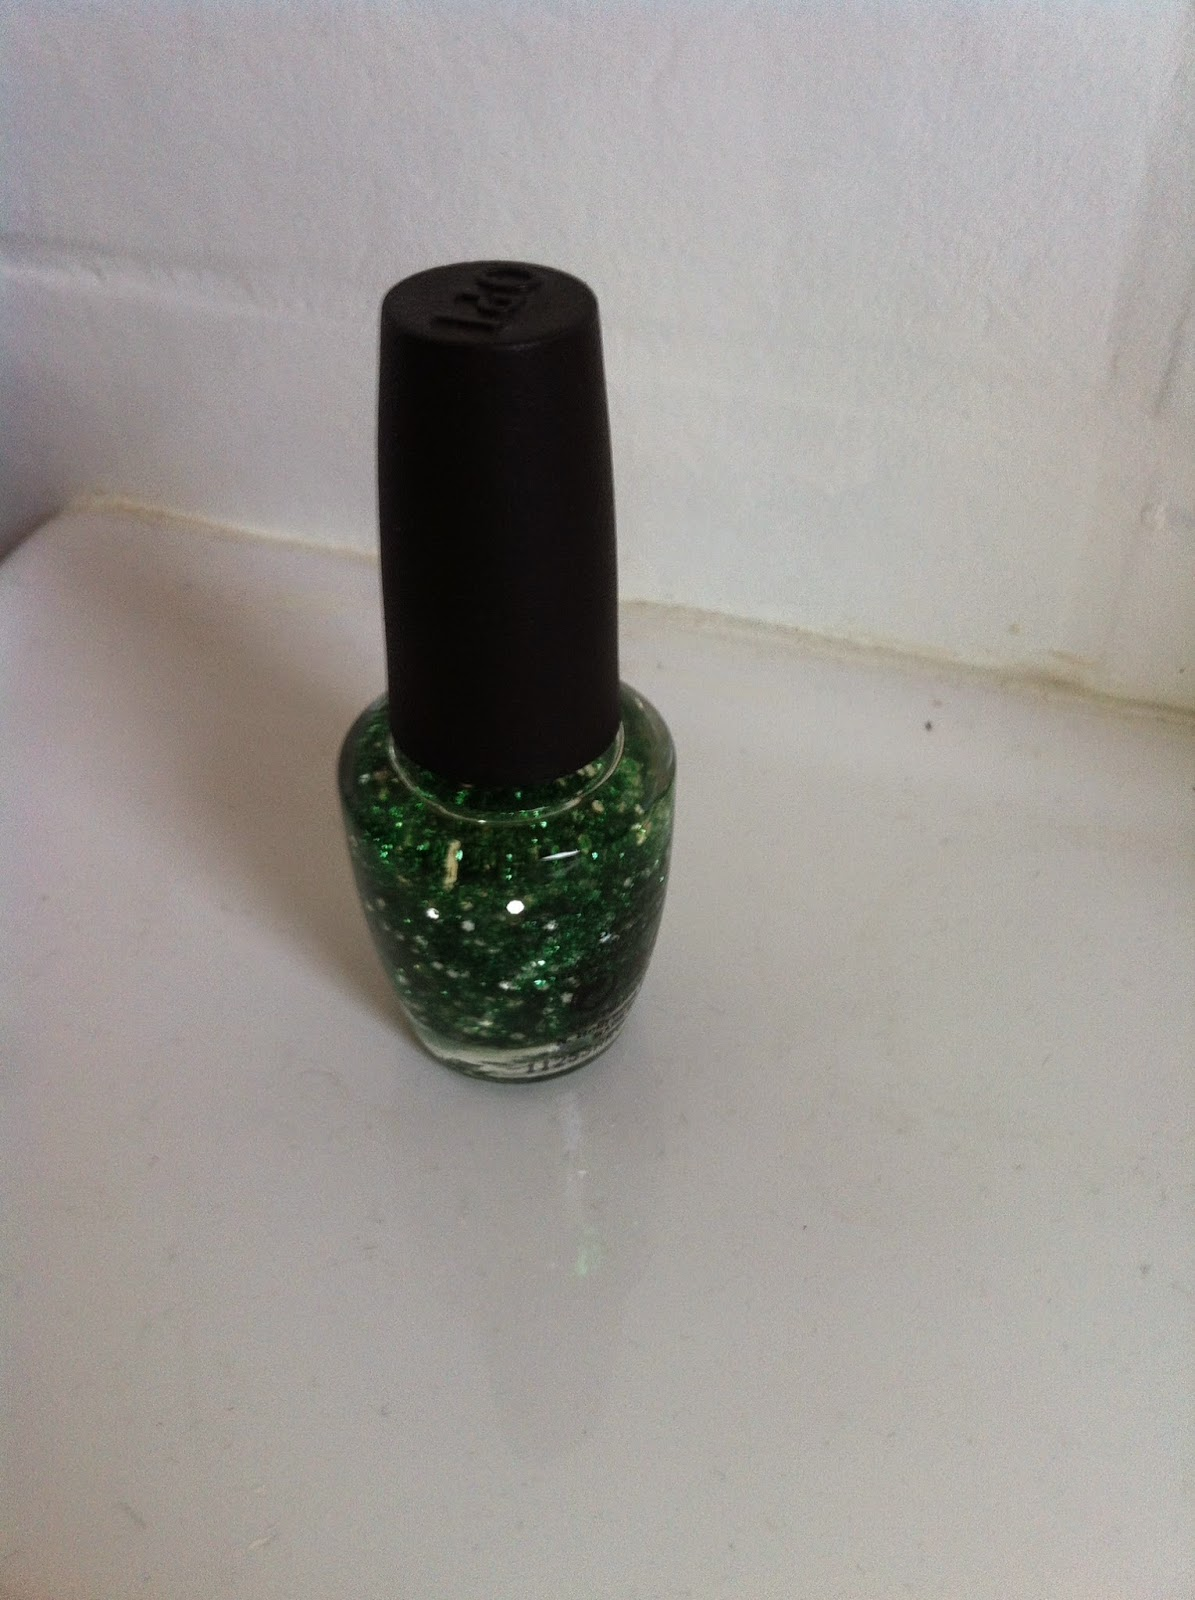 O.P.I Nailpolish bottle